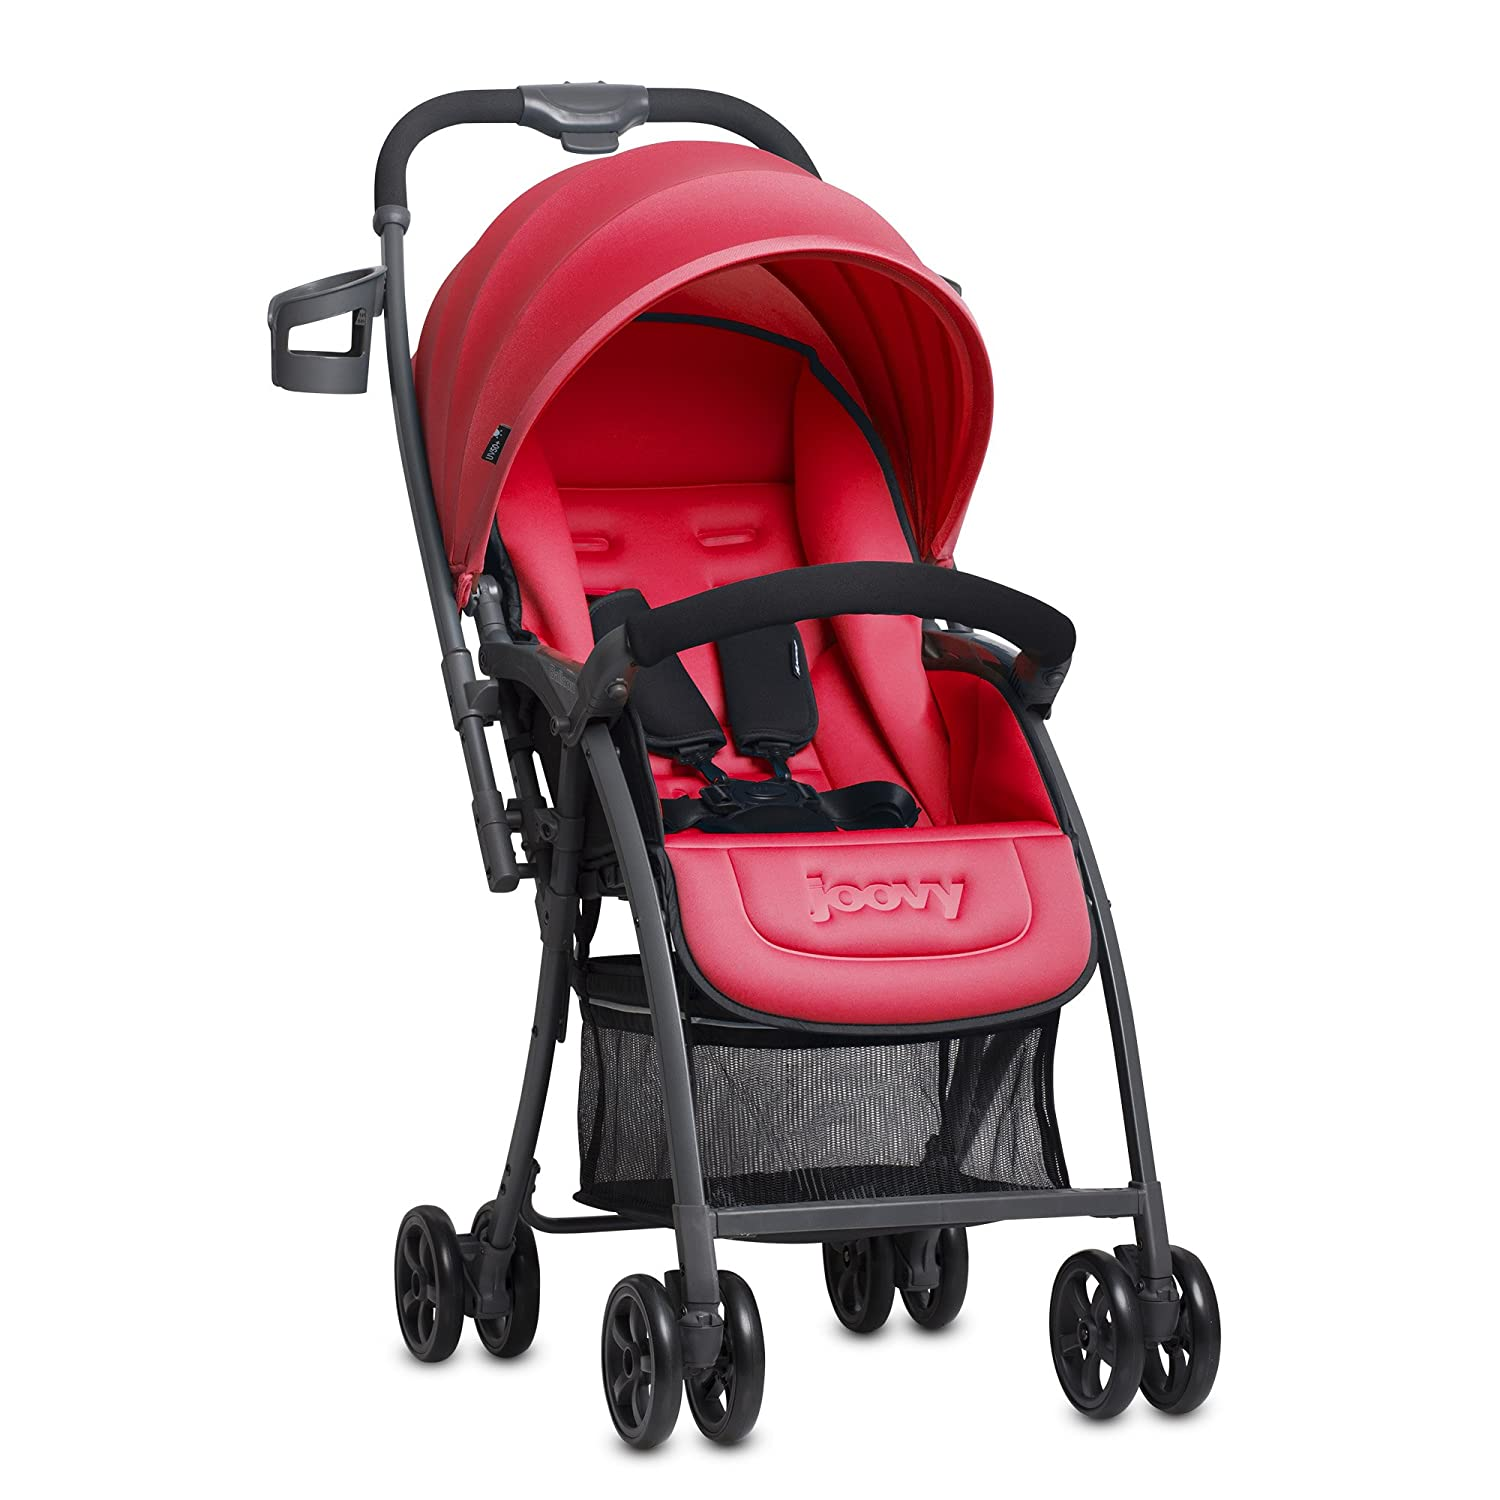 Joovy Balloon Stroller, Red 8091